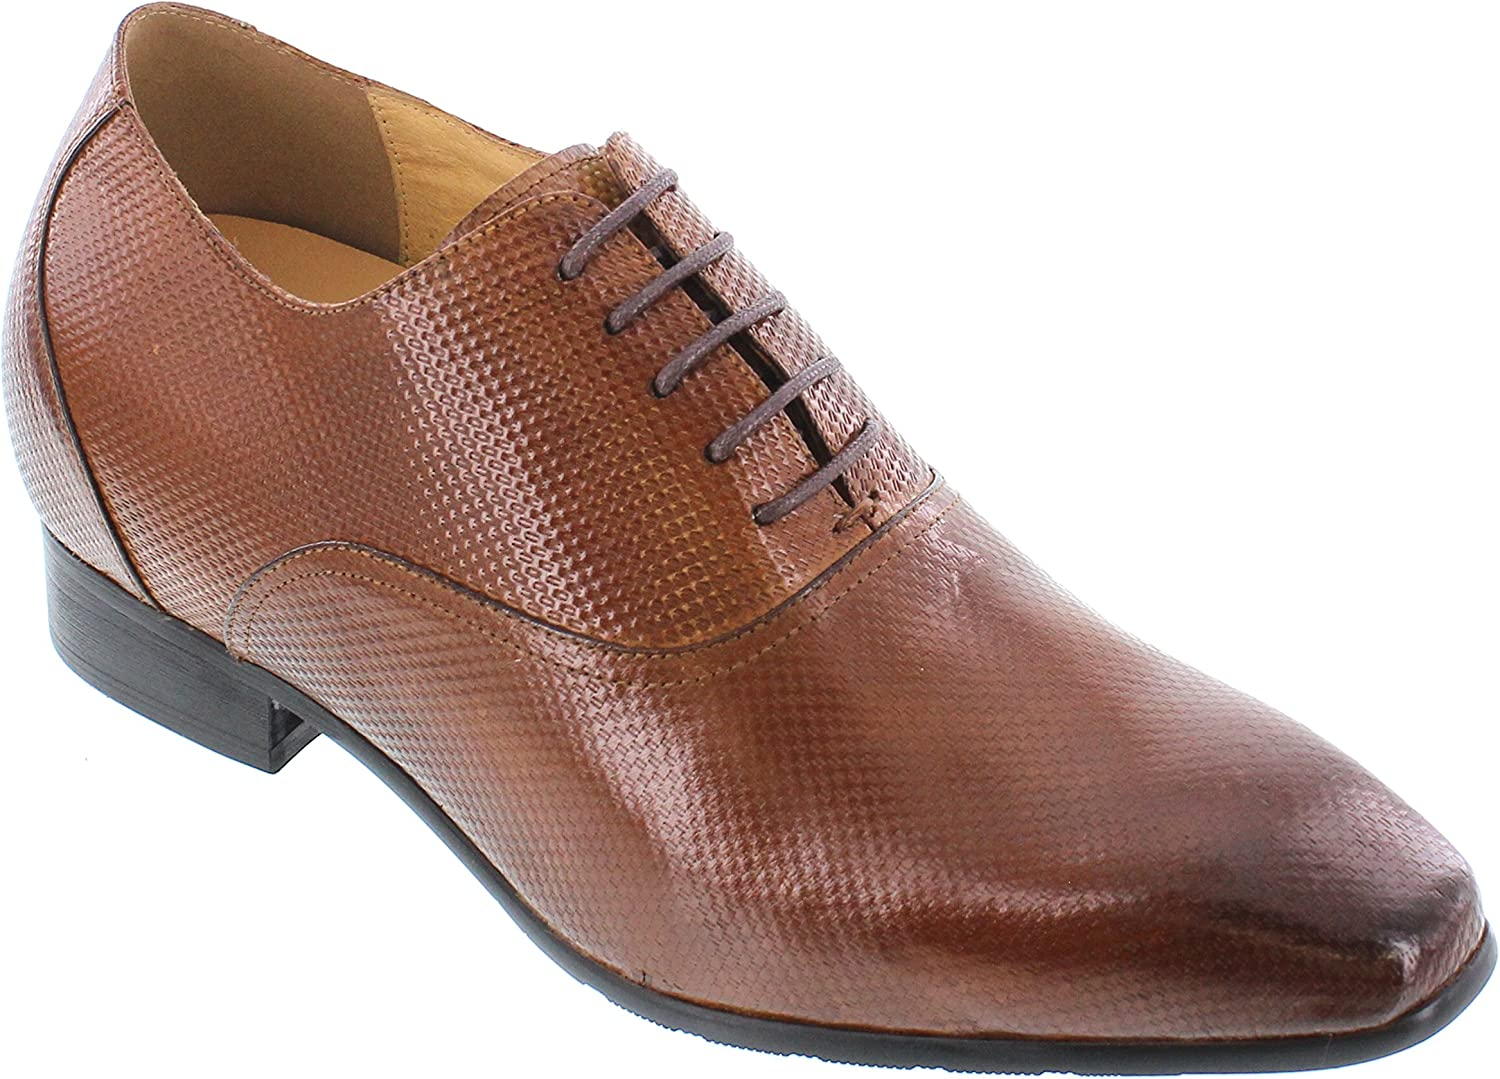 CALTO Men's Invisible Height Increasing Elevator Shoes - Brown Premium Leather Lace-up Formal Oxfords - 3 Inches Taller - Y4022